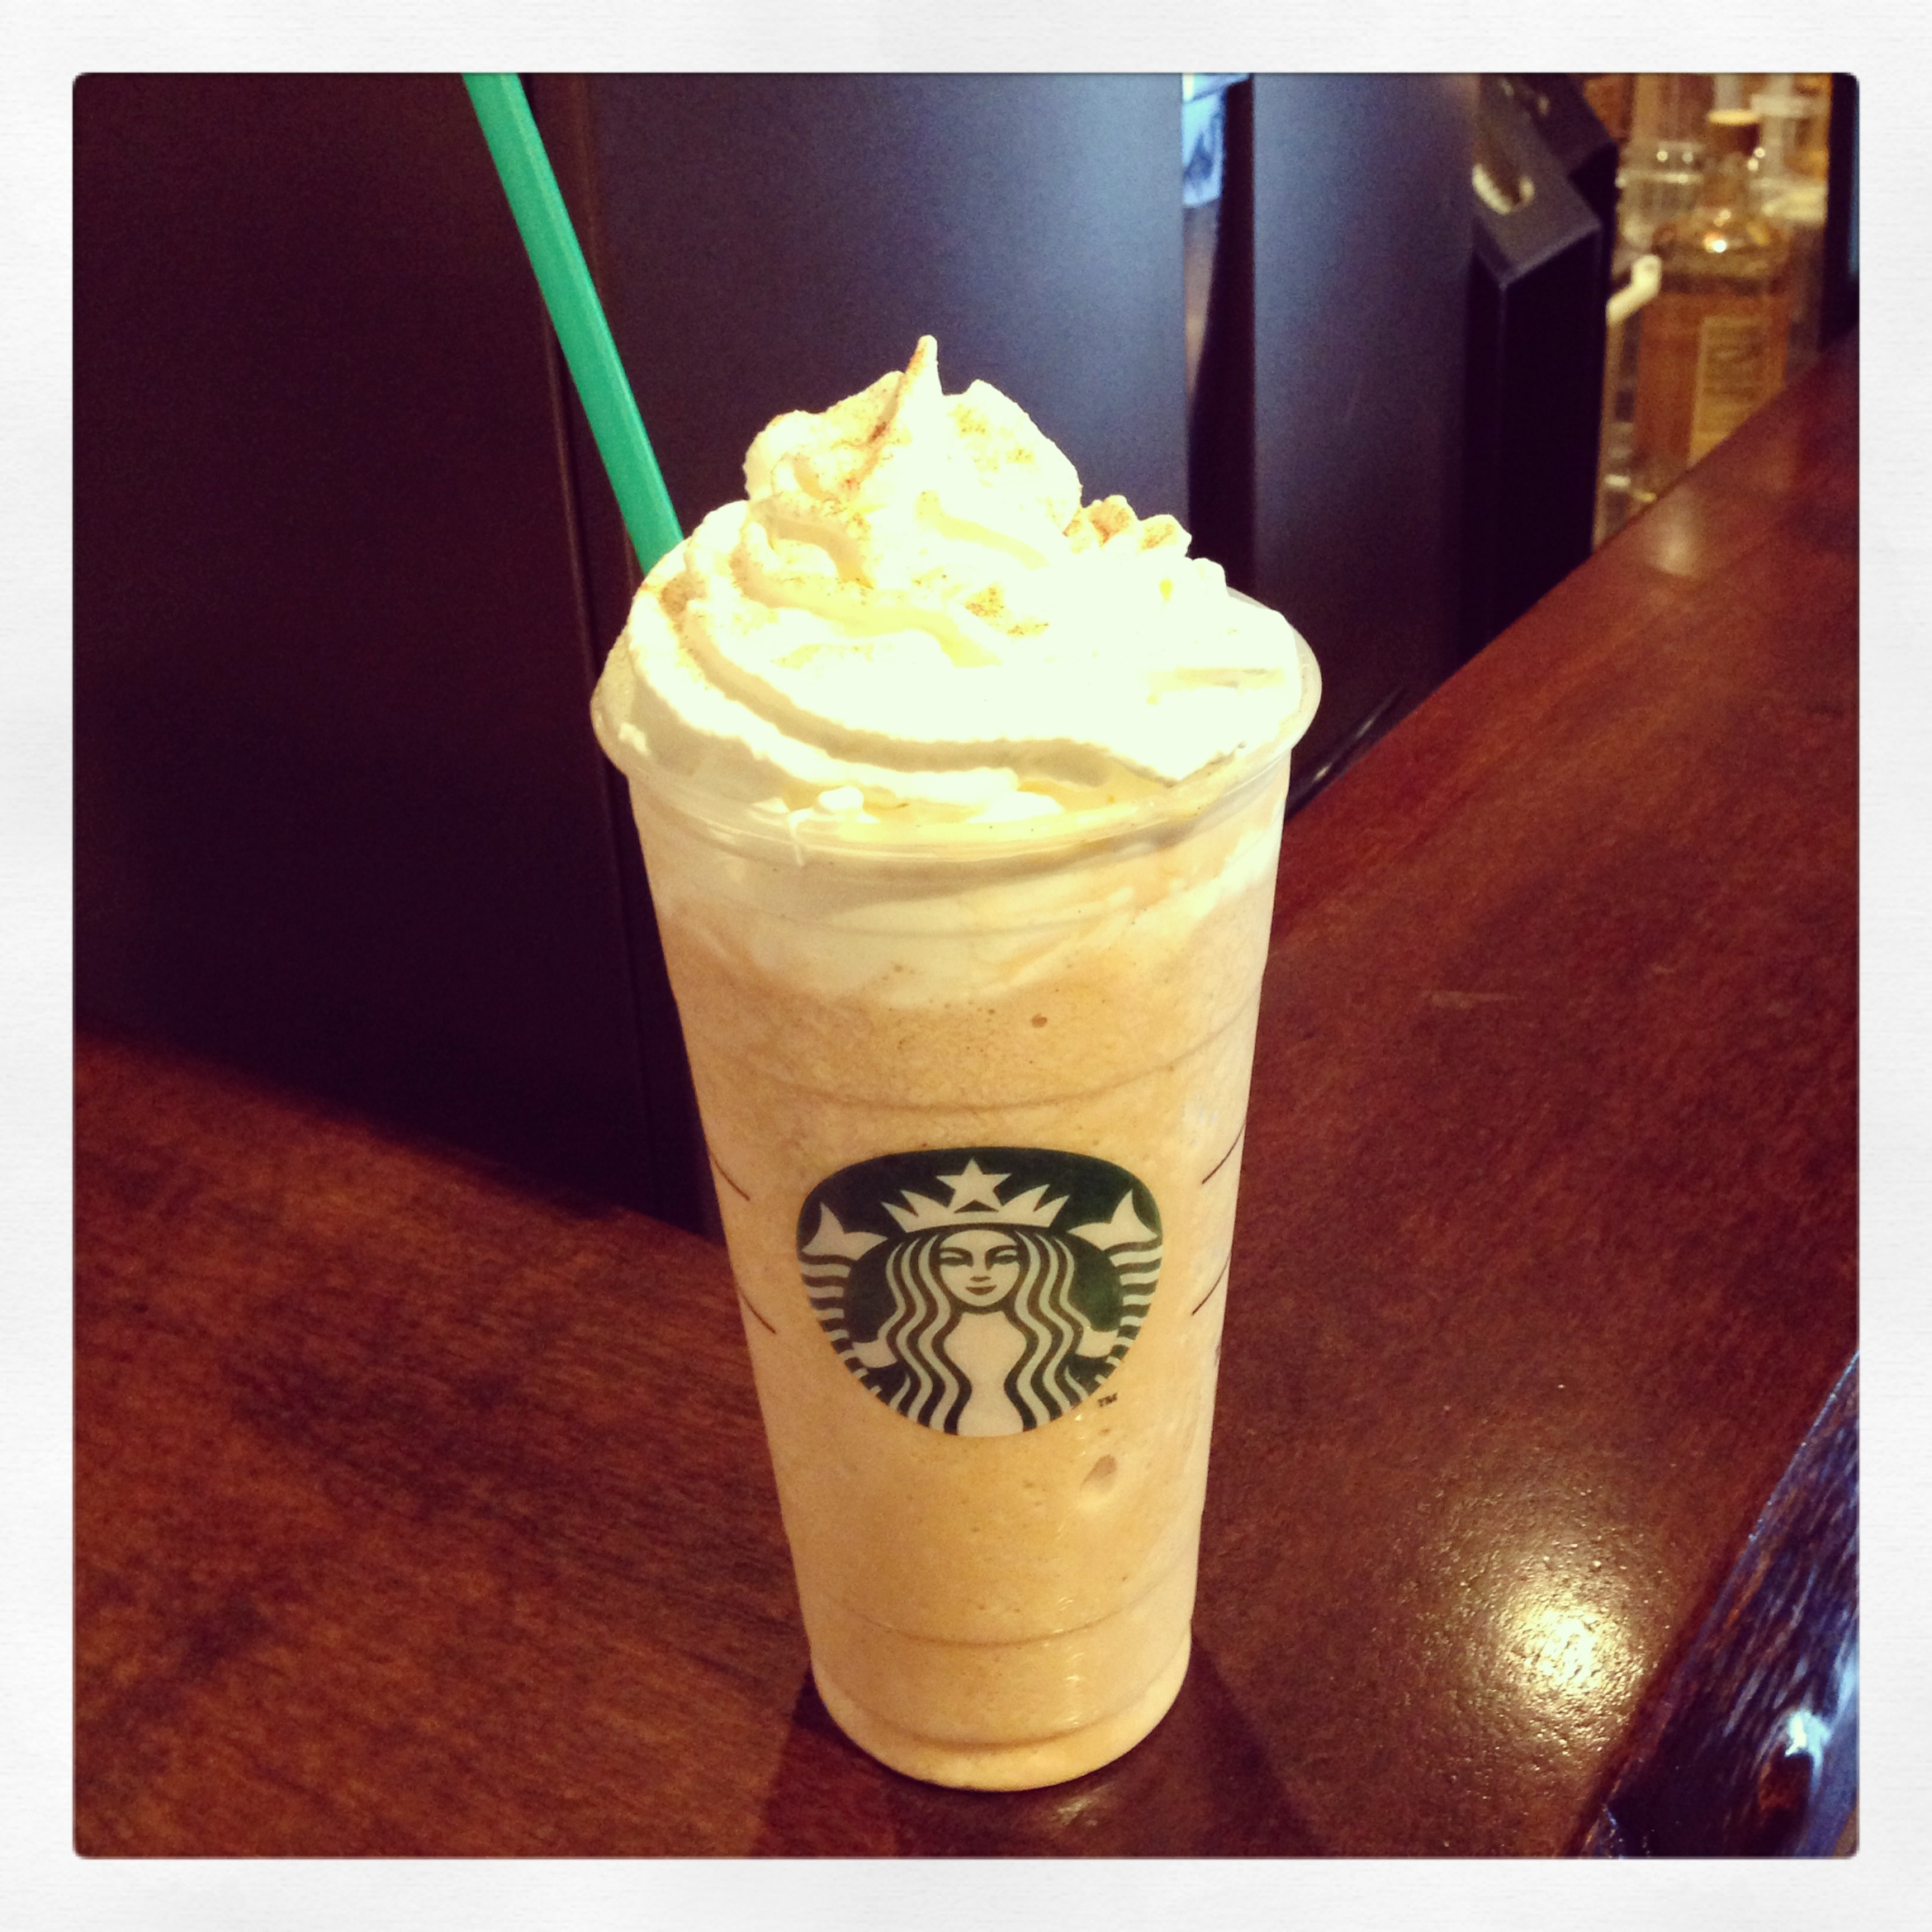 The Carrot Cake Frappuccino